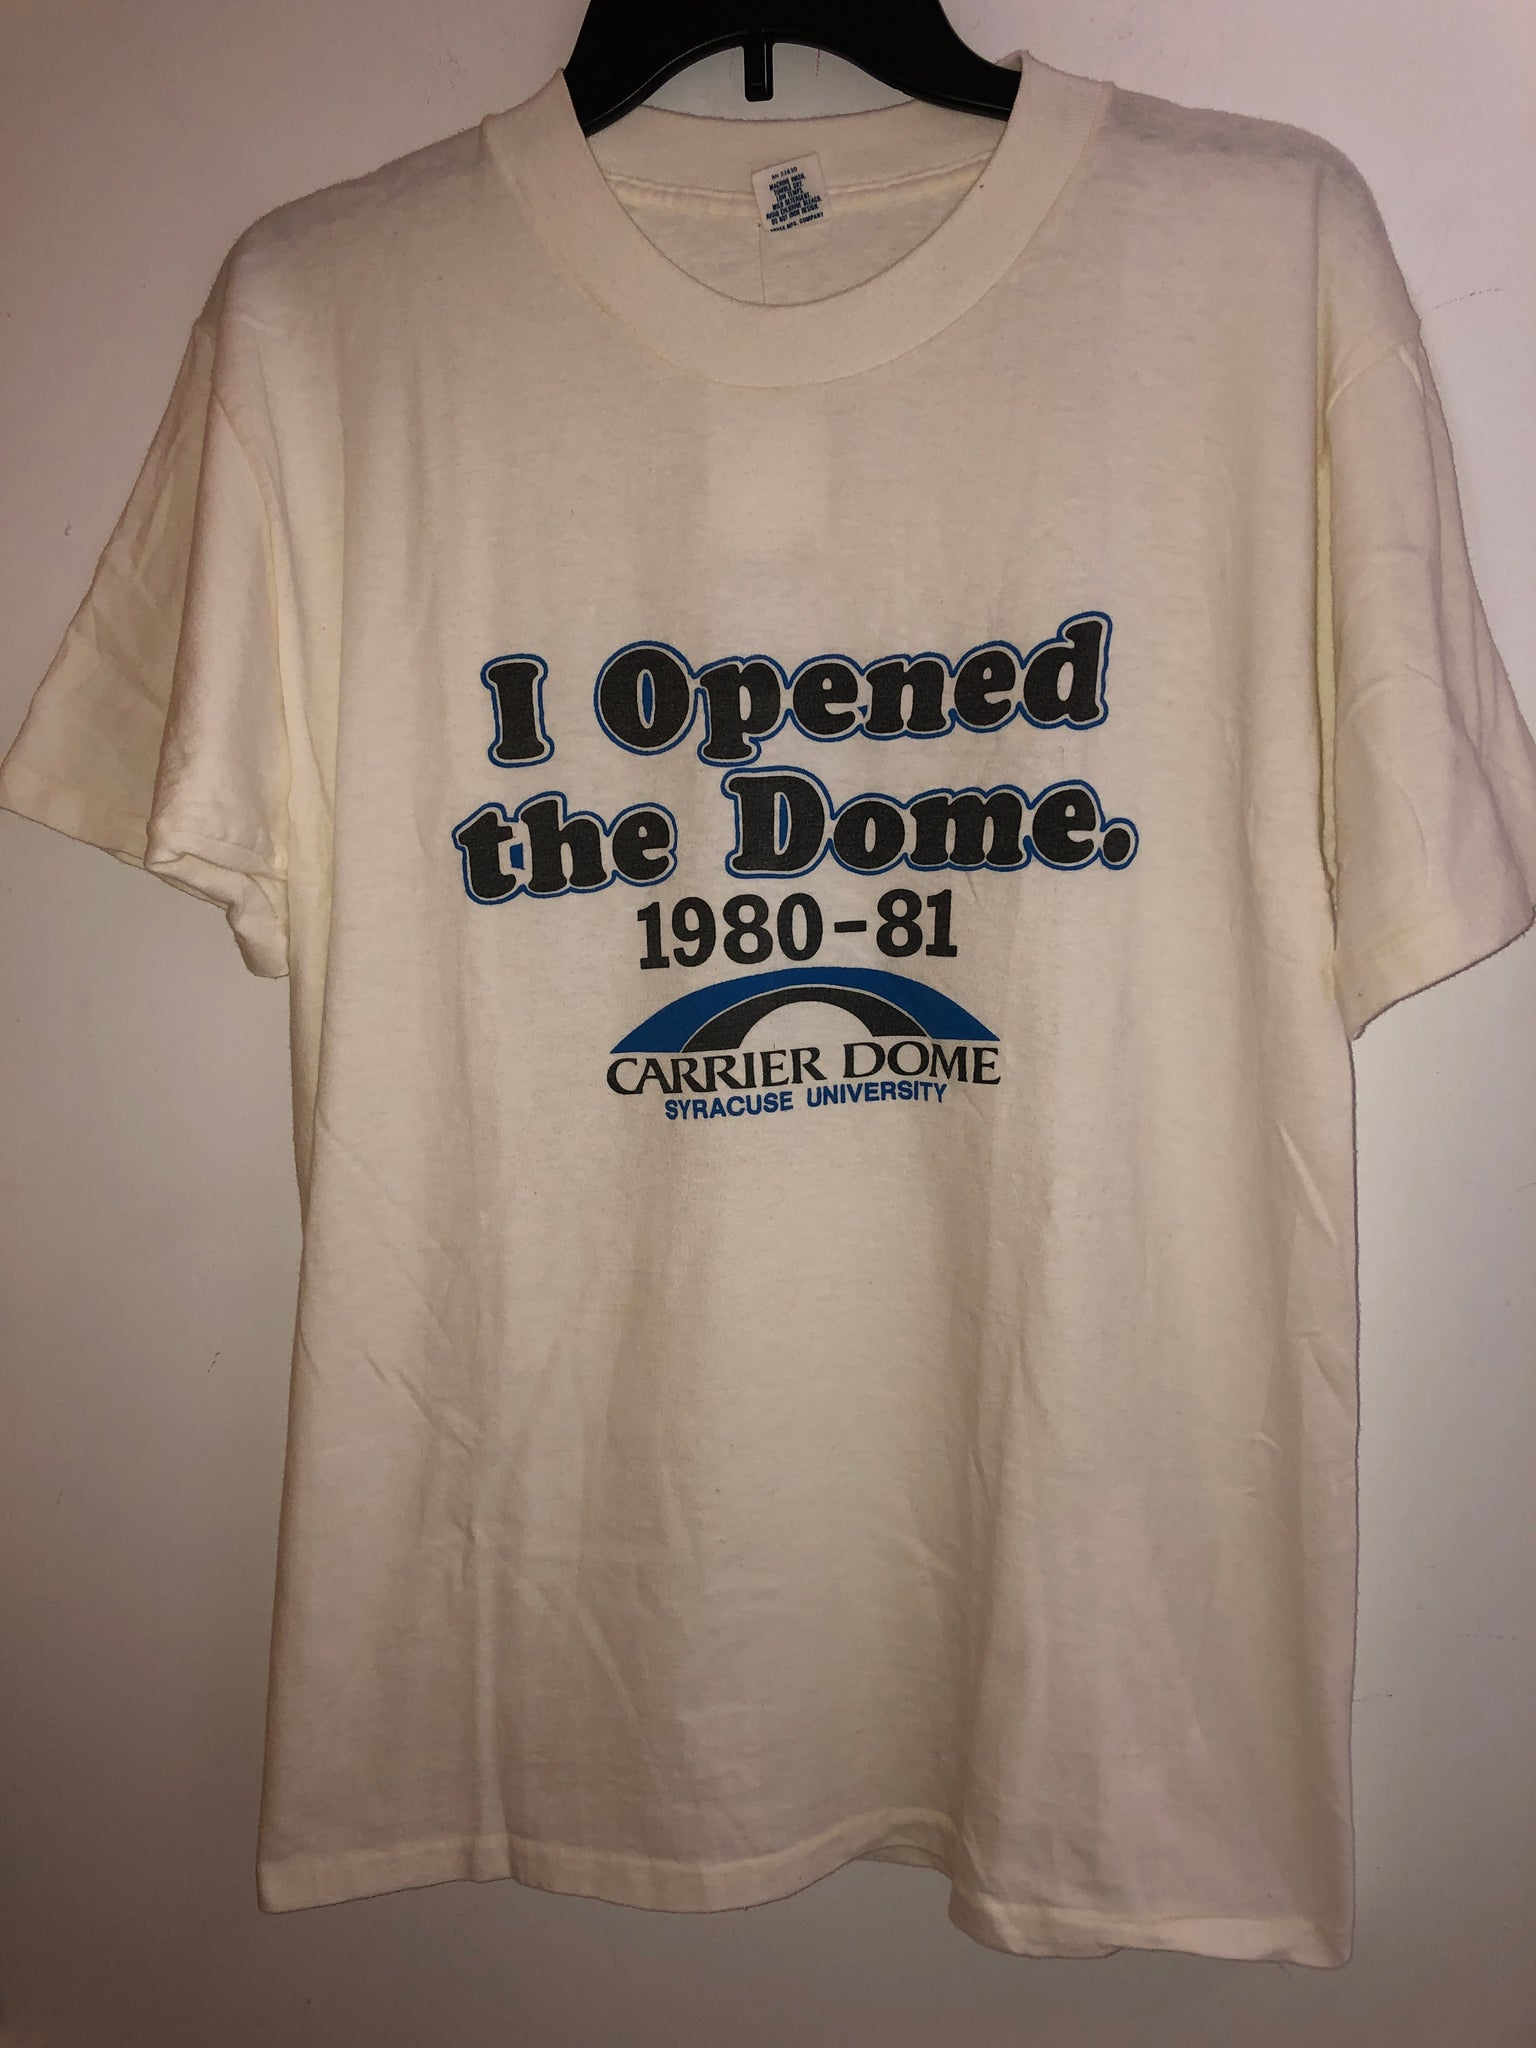 Extremely rare 80's Vintage I opened the Carrier Dome T Shirt fits a Medium Made in USA